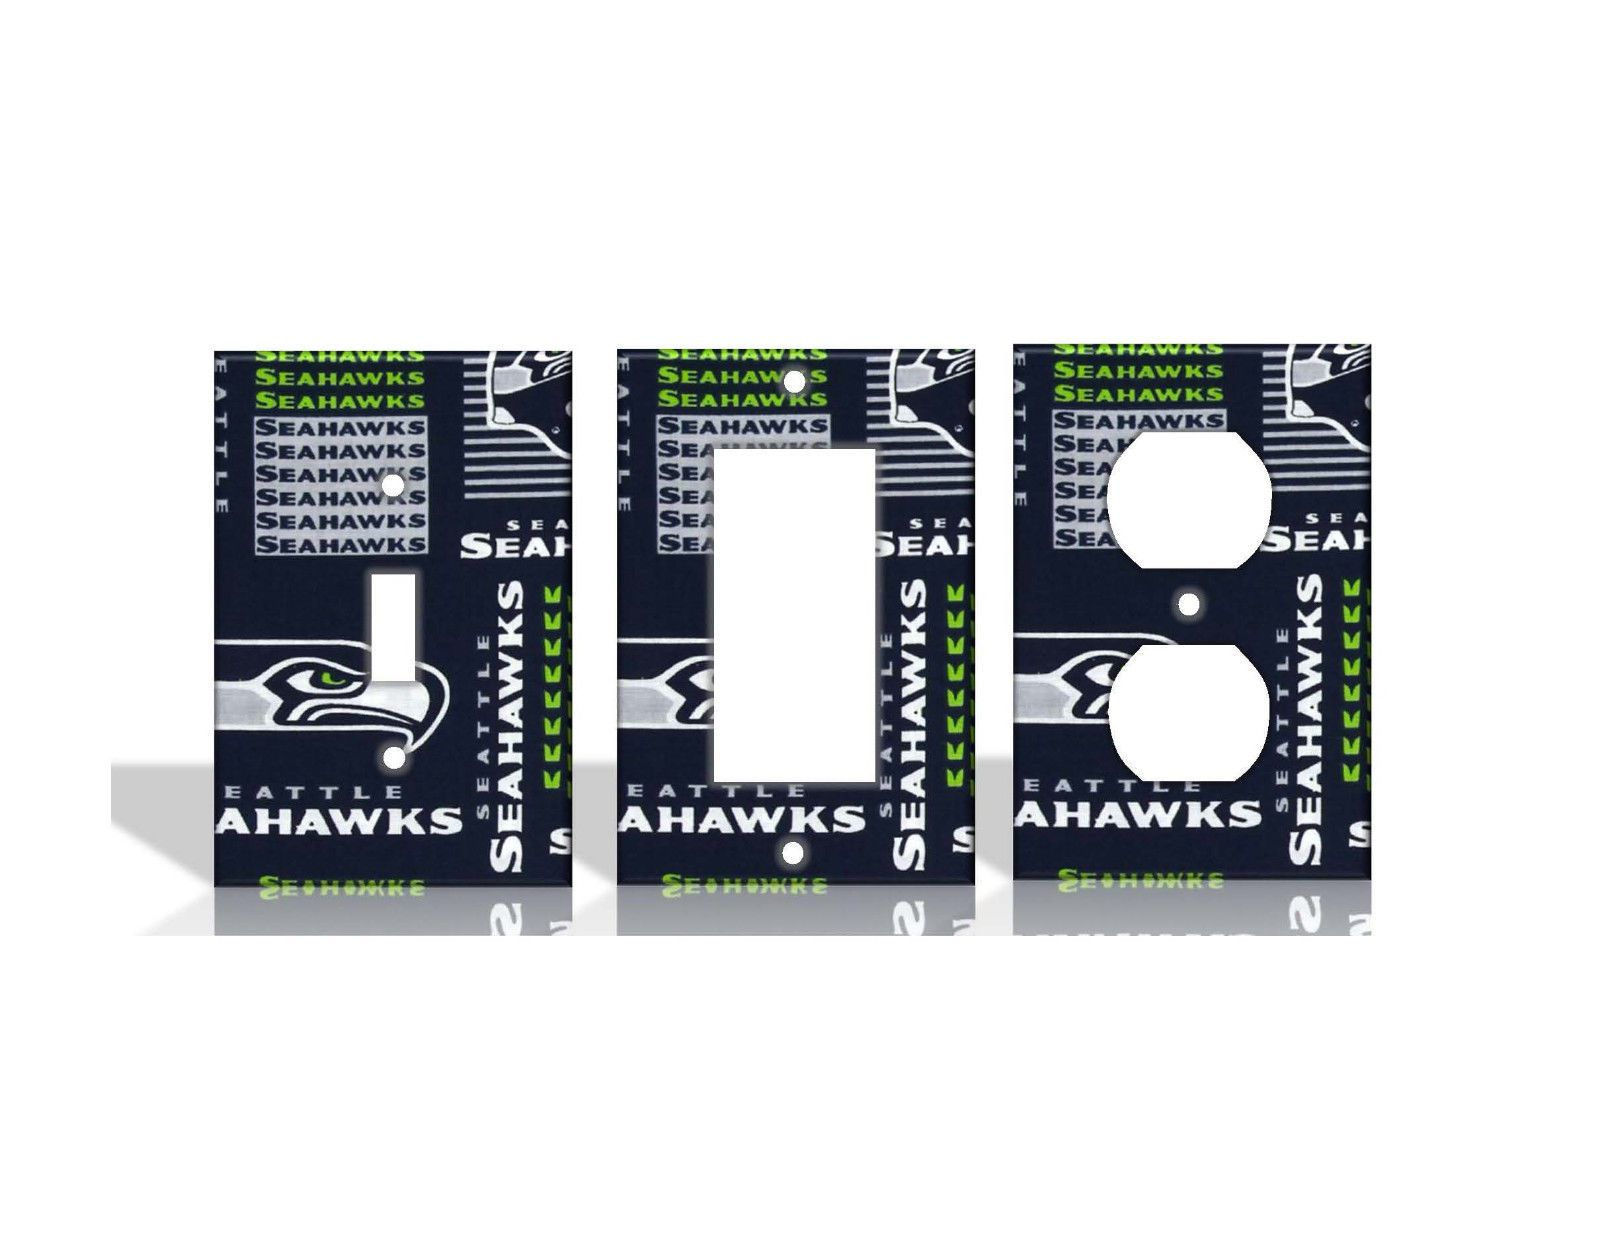 seattle seahawks 2 green light switch covers football nfl home decor outlet ebay